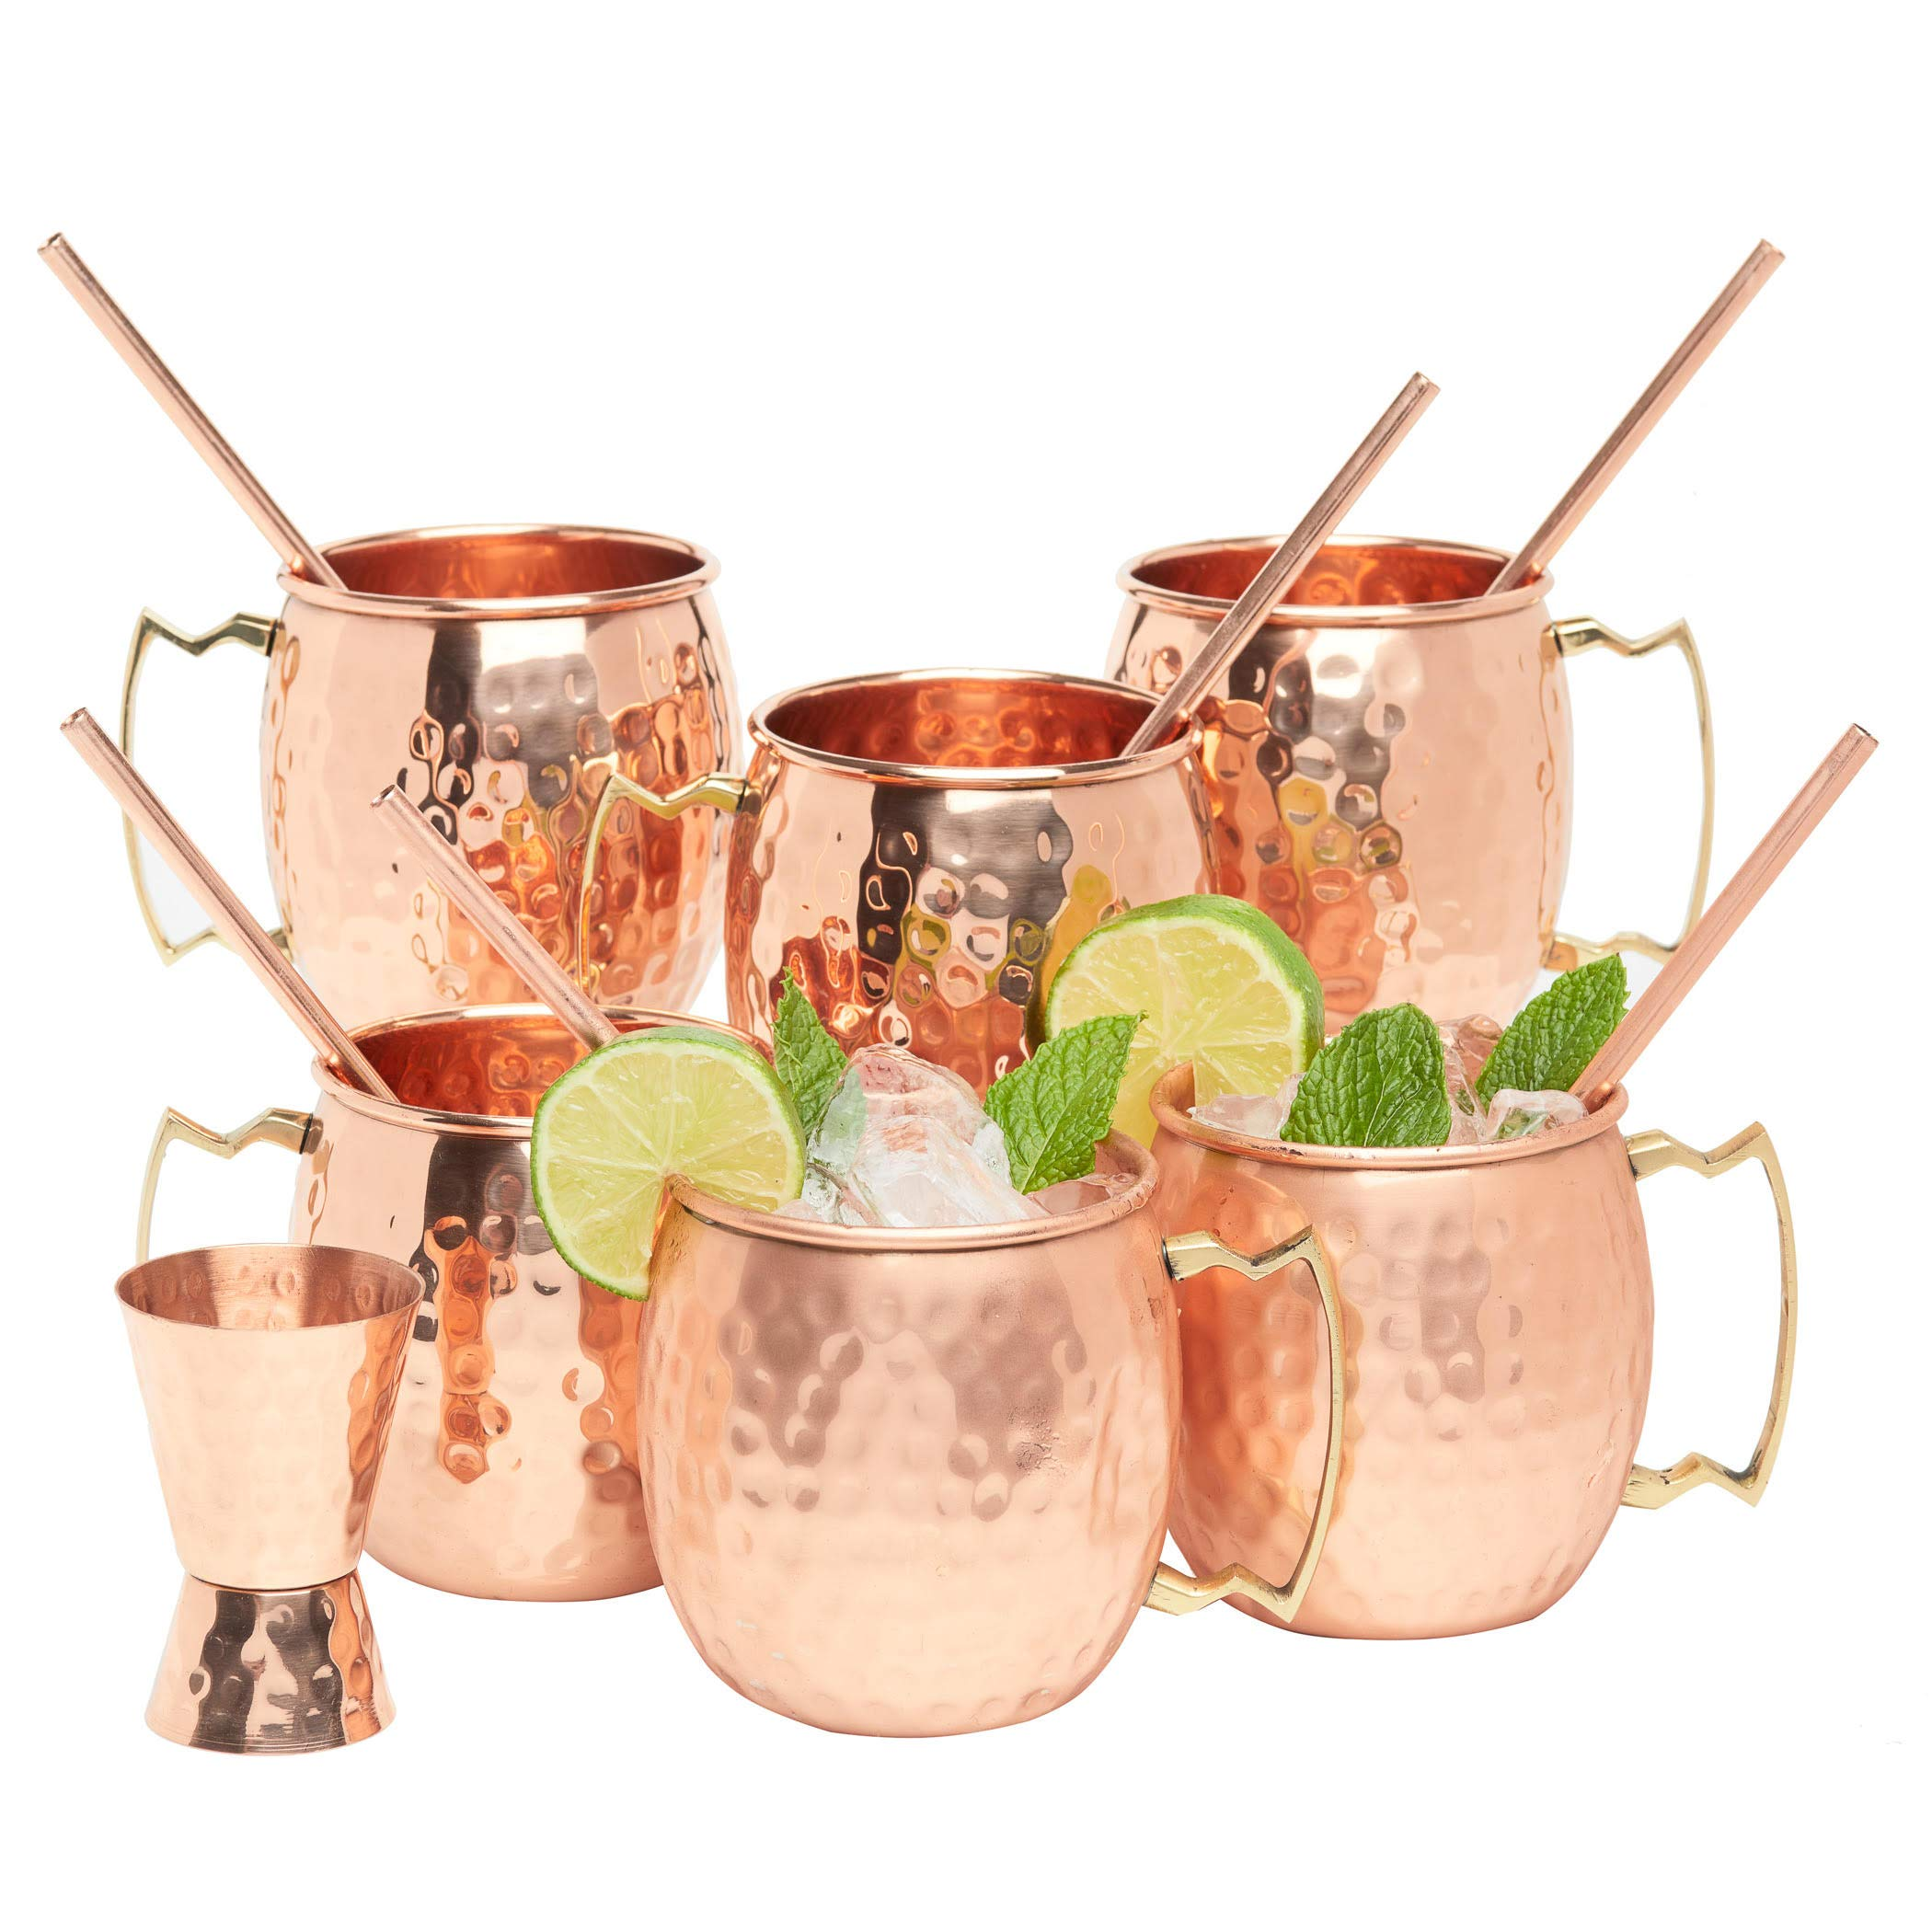 Kitchen Science Moscow Mule Copper Mugs 16 Ounce with 6 Straws and Jigger Set by Kitchen Science